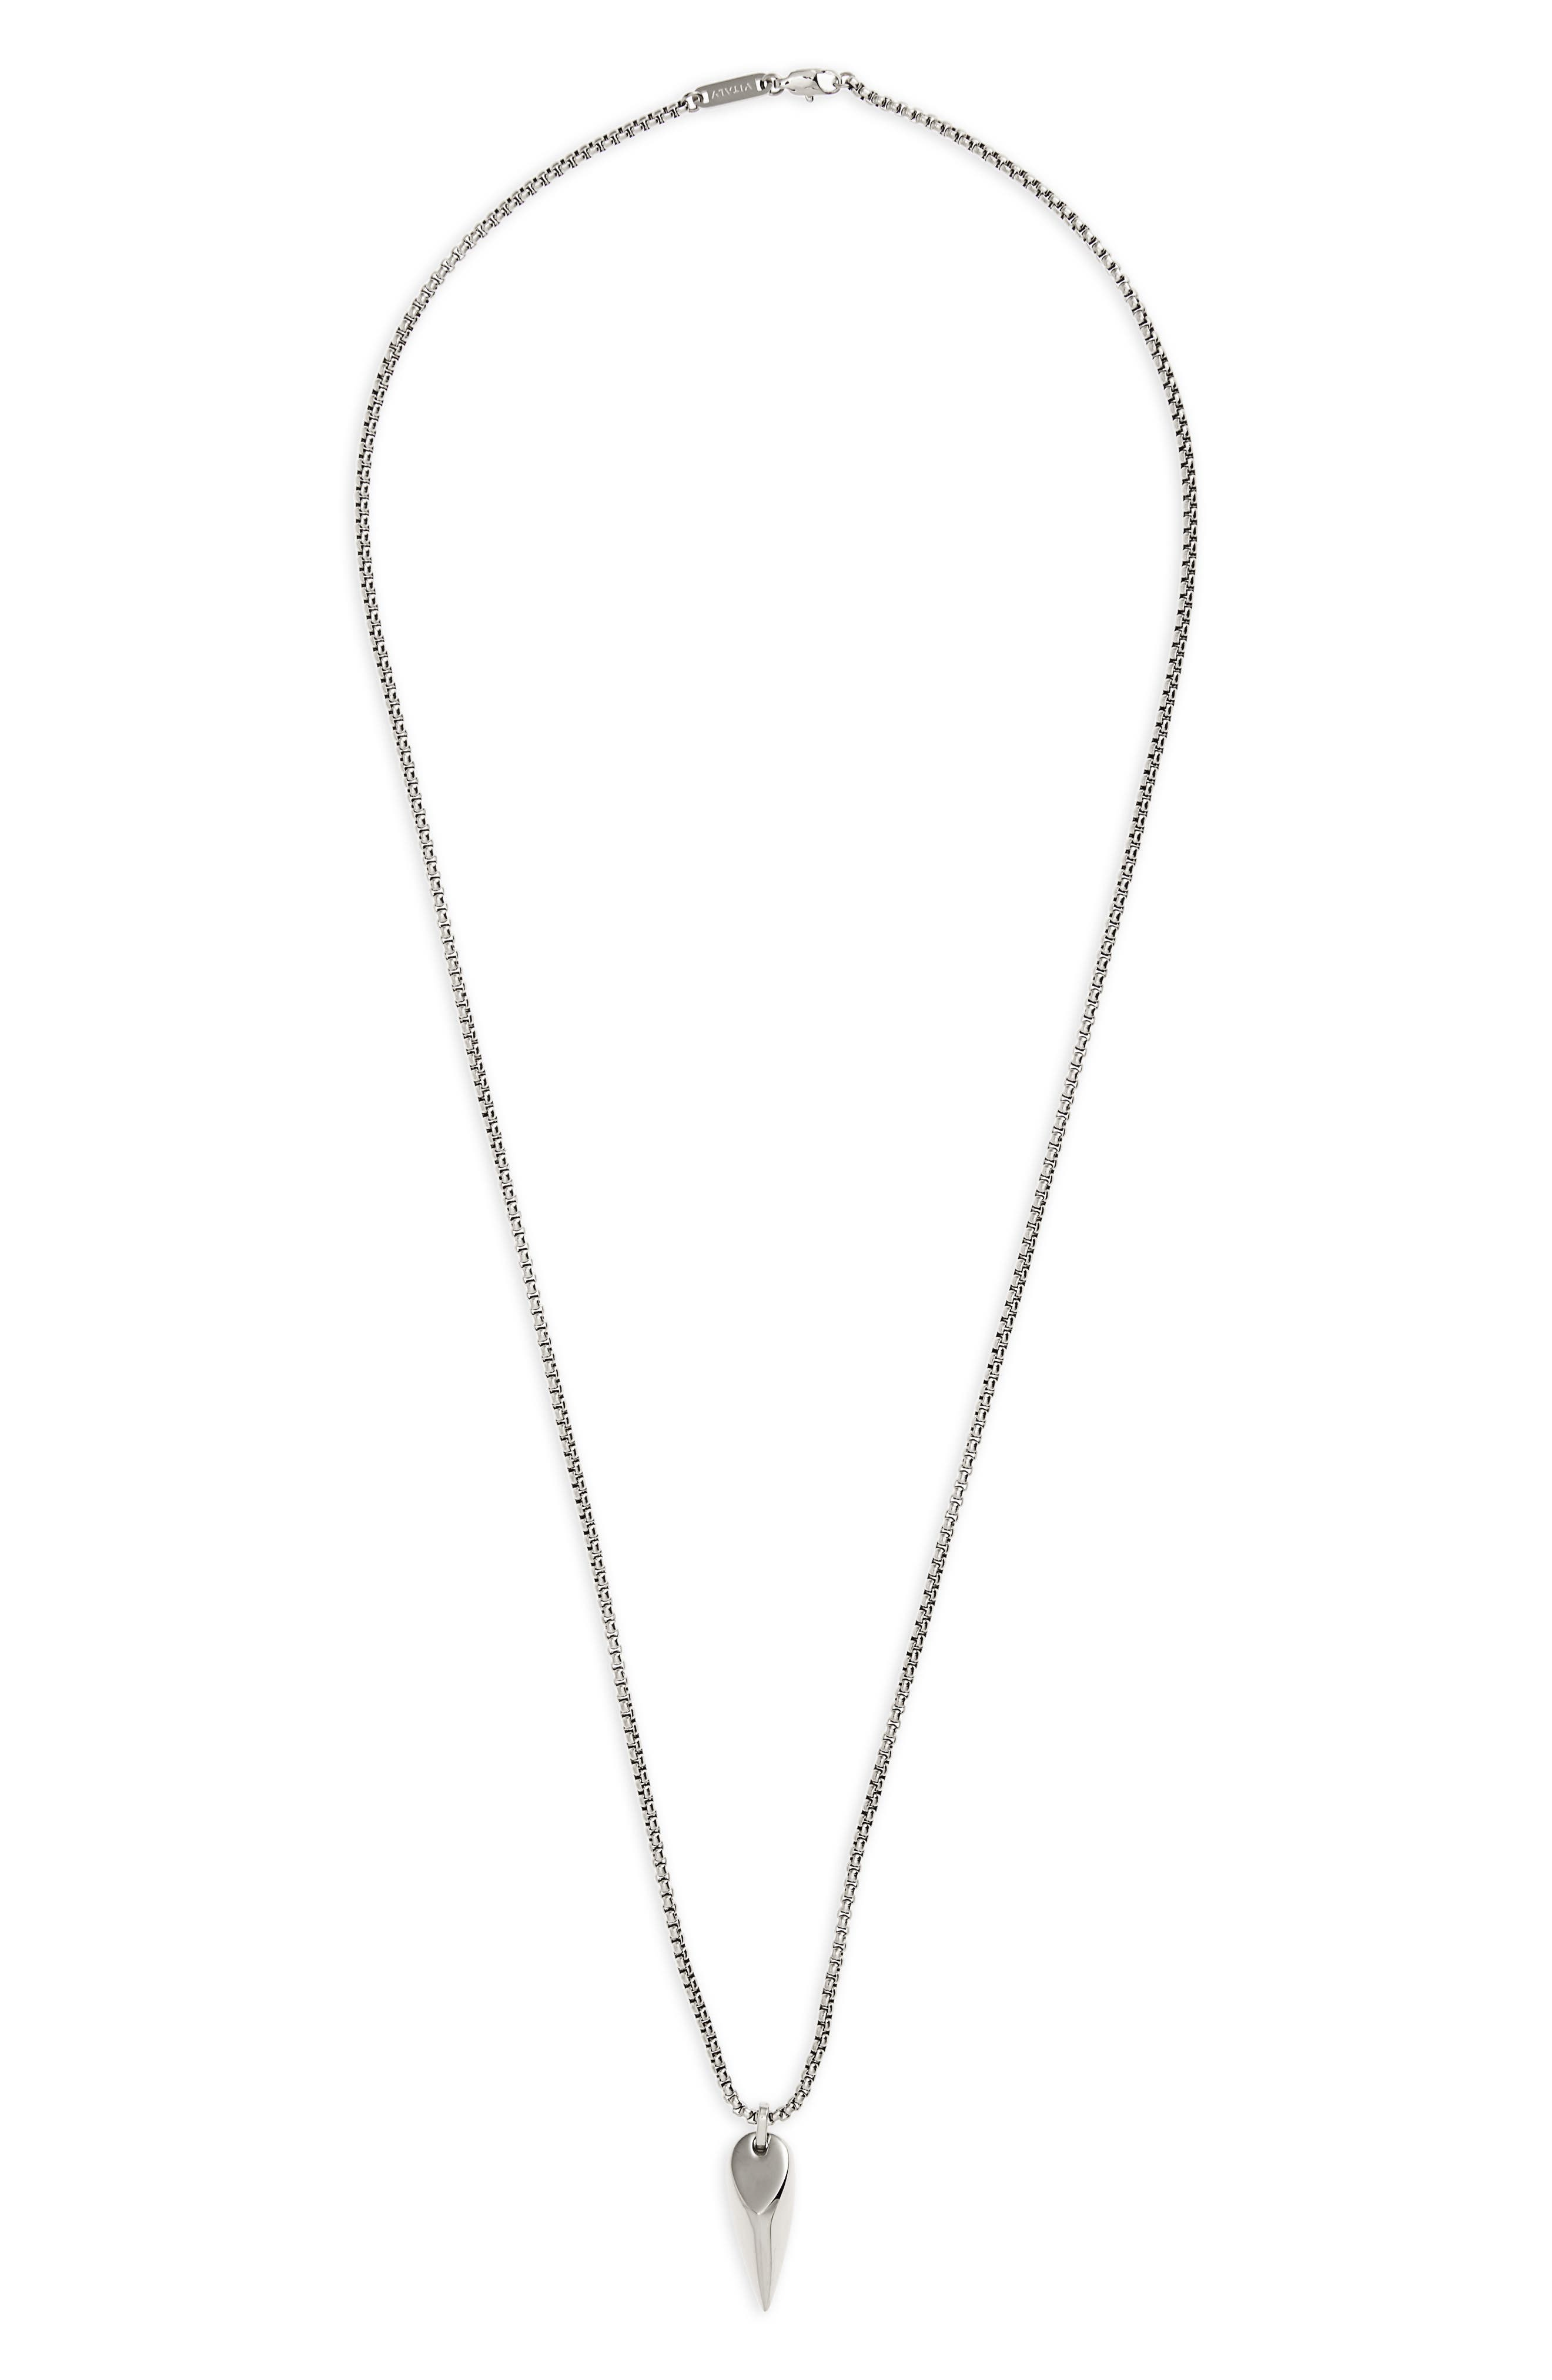 Corvus Pendant Necklace,                         Main,                         color, Stainless Steel